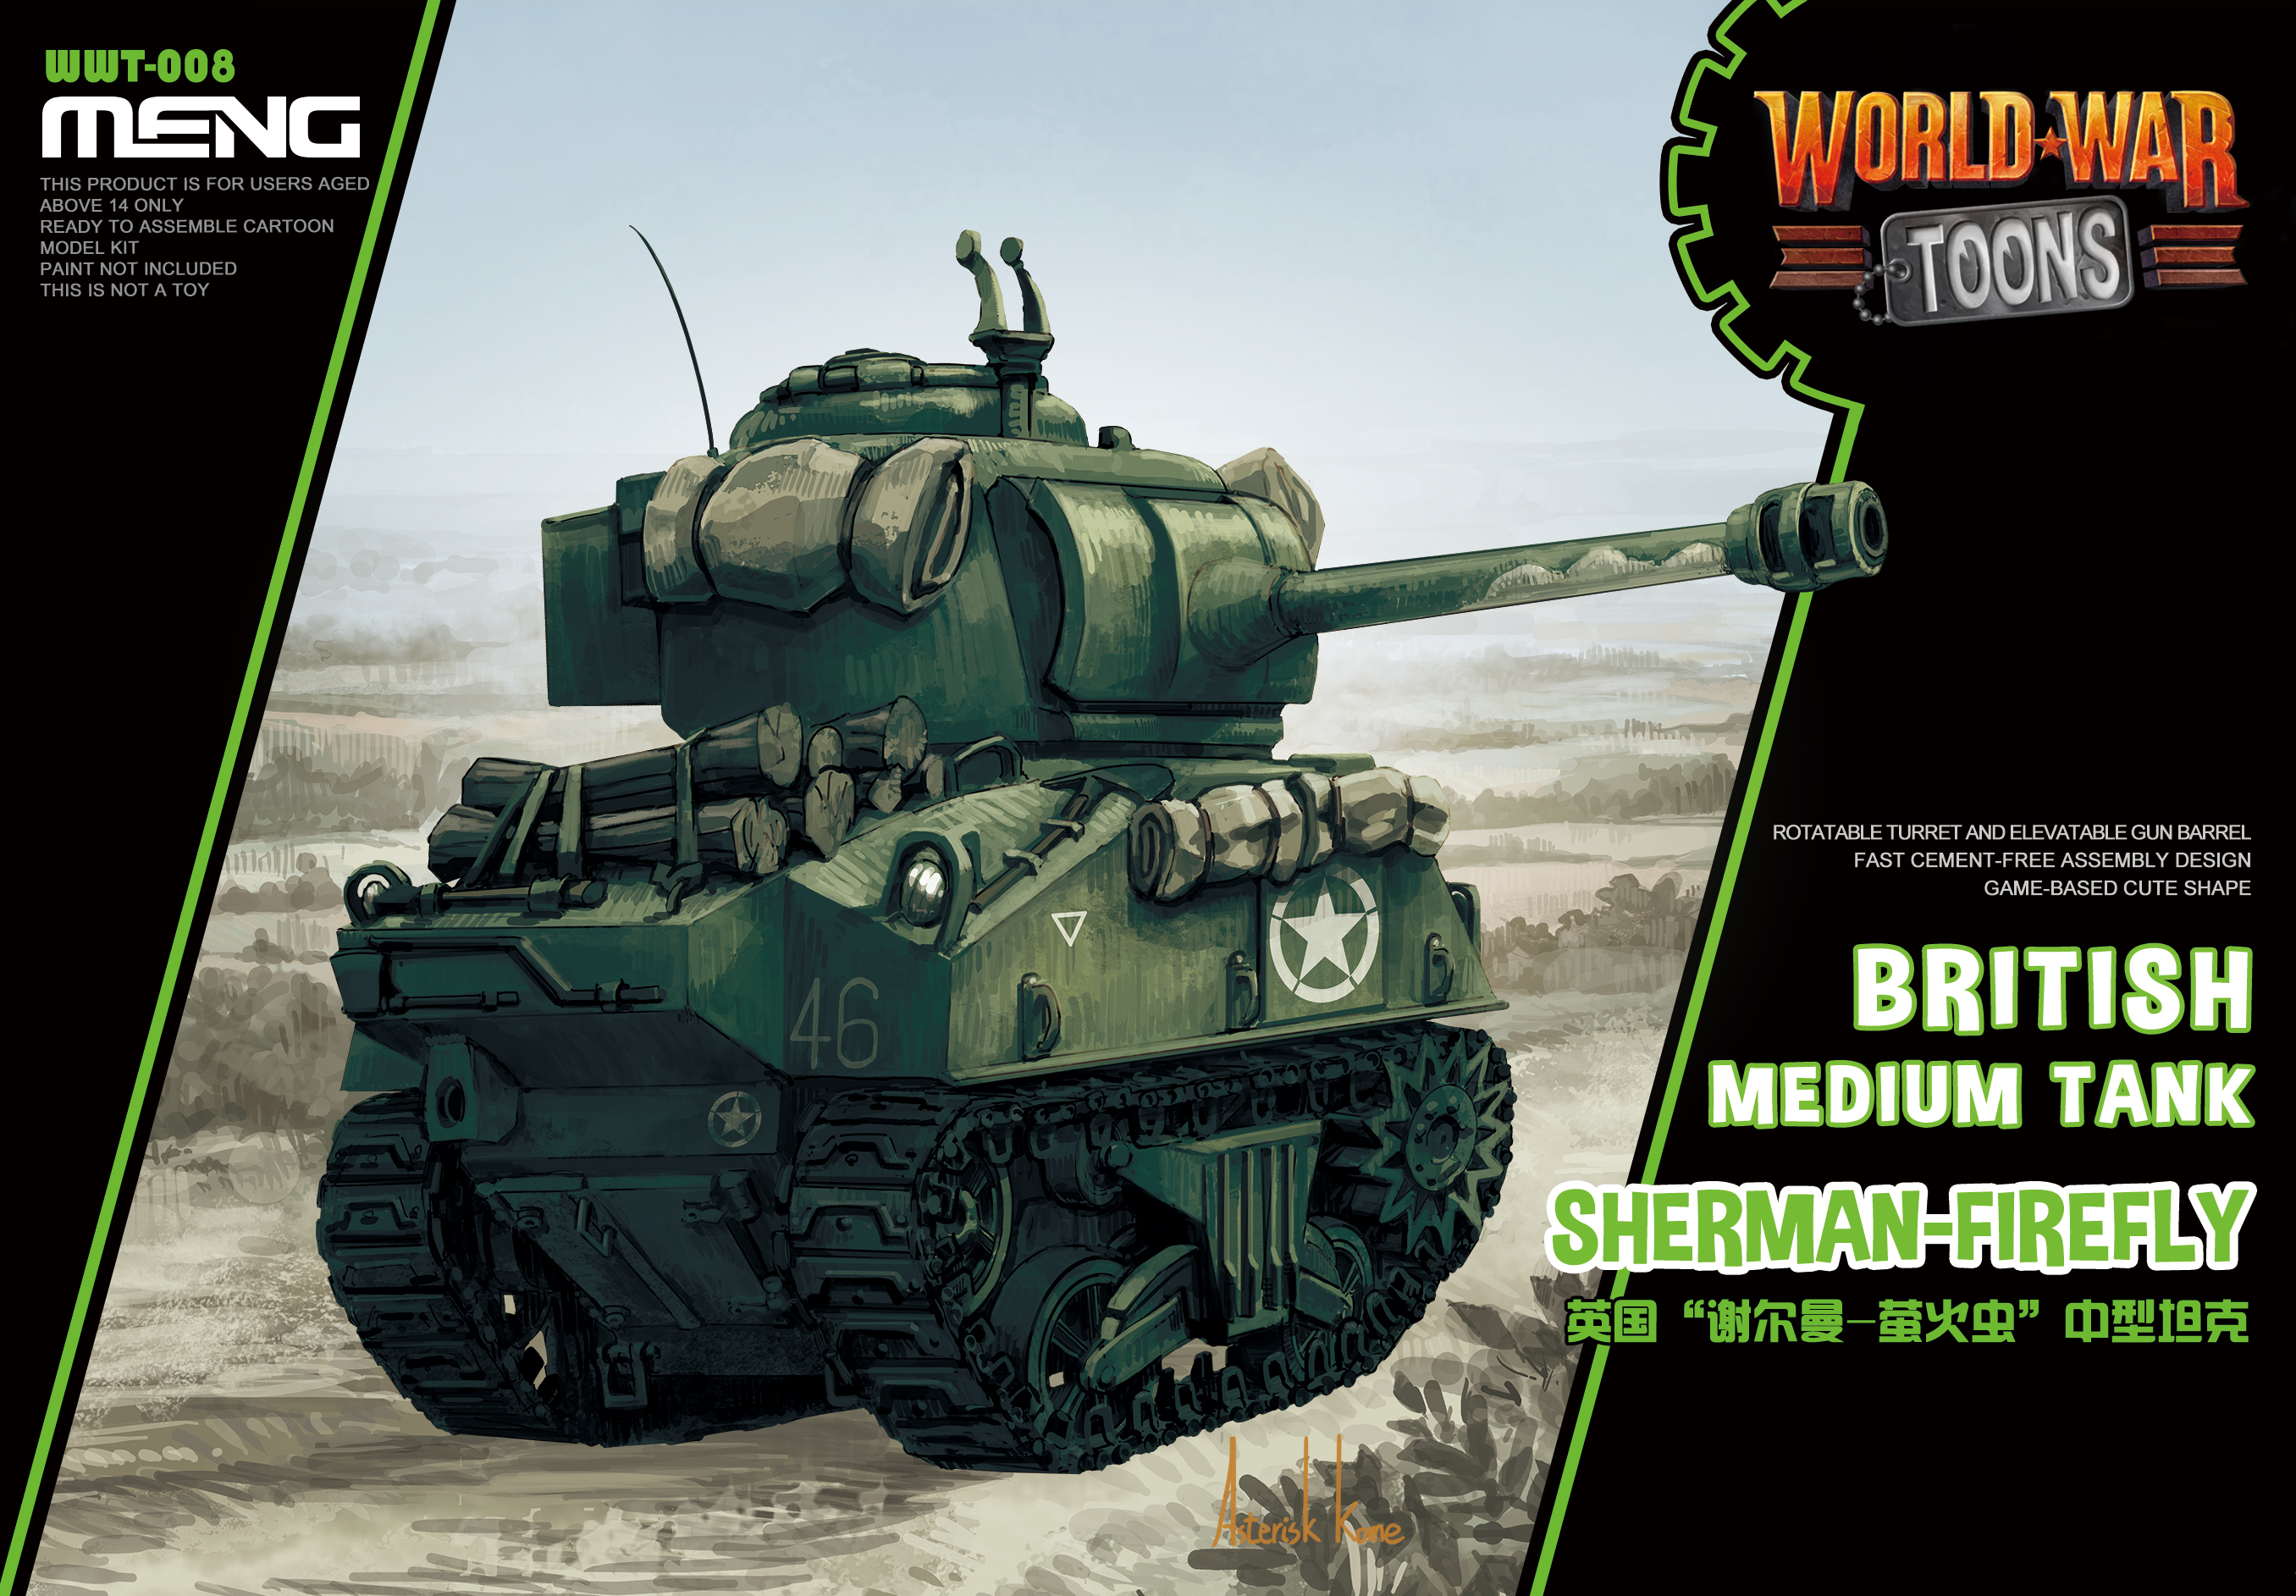 Meng British Medium Tank Sherman-Firefly (CARTOON MODEL)